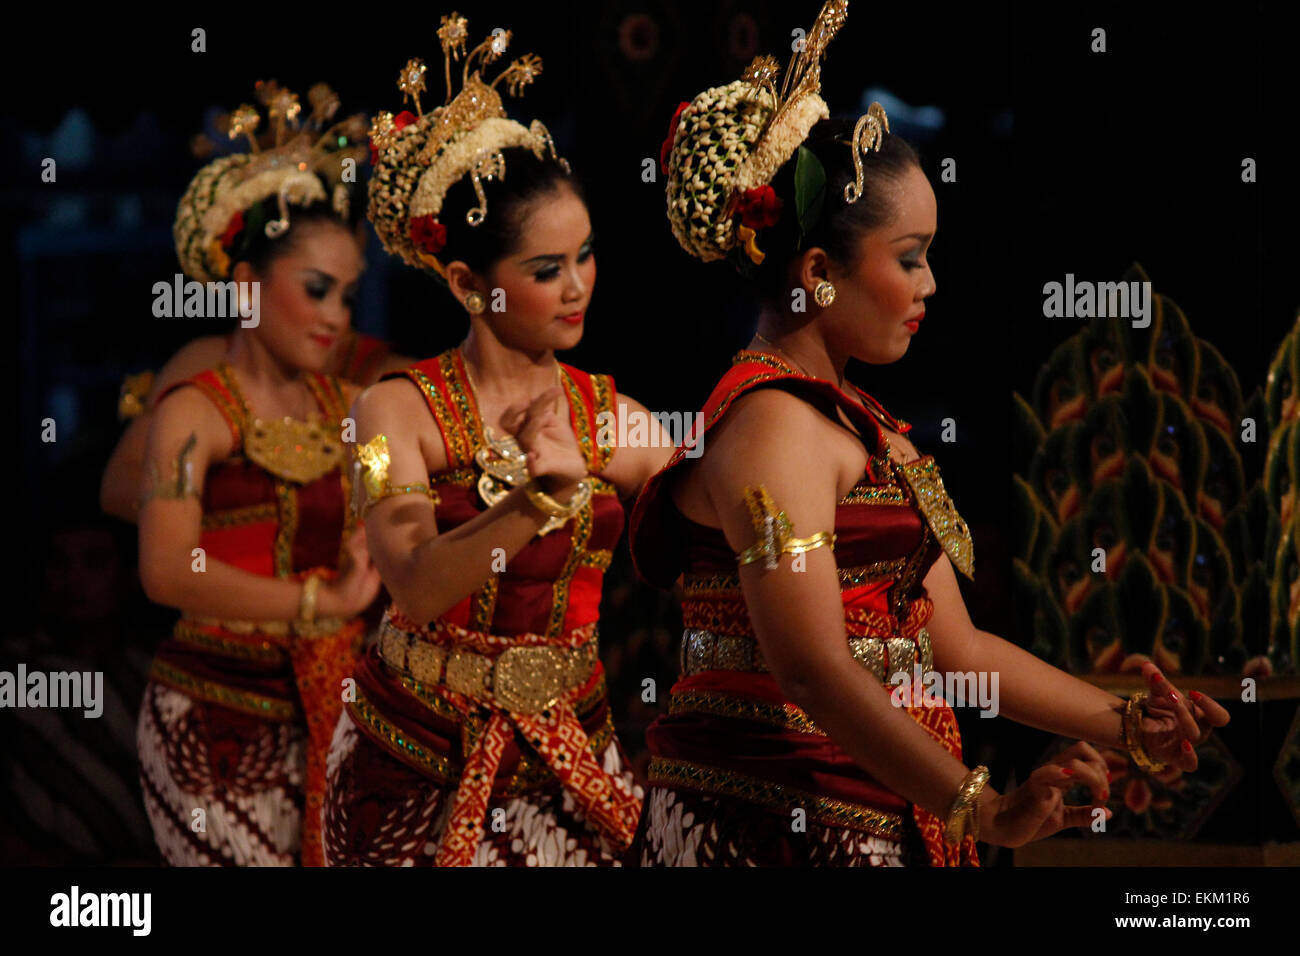 East Jakarta, Indonesia  11th Apr, 2015  Dancers perform a